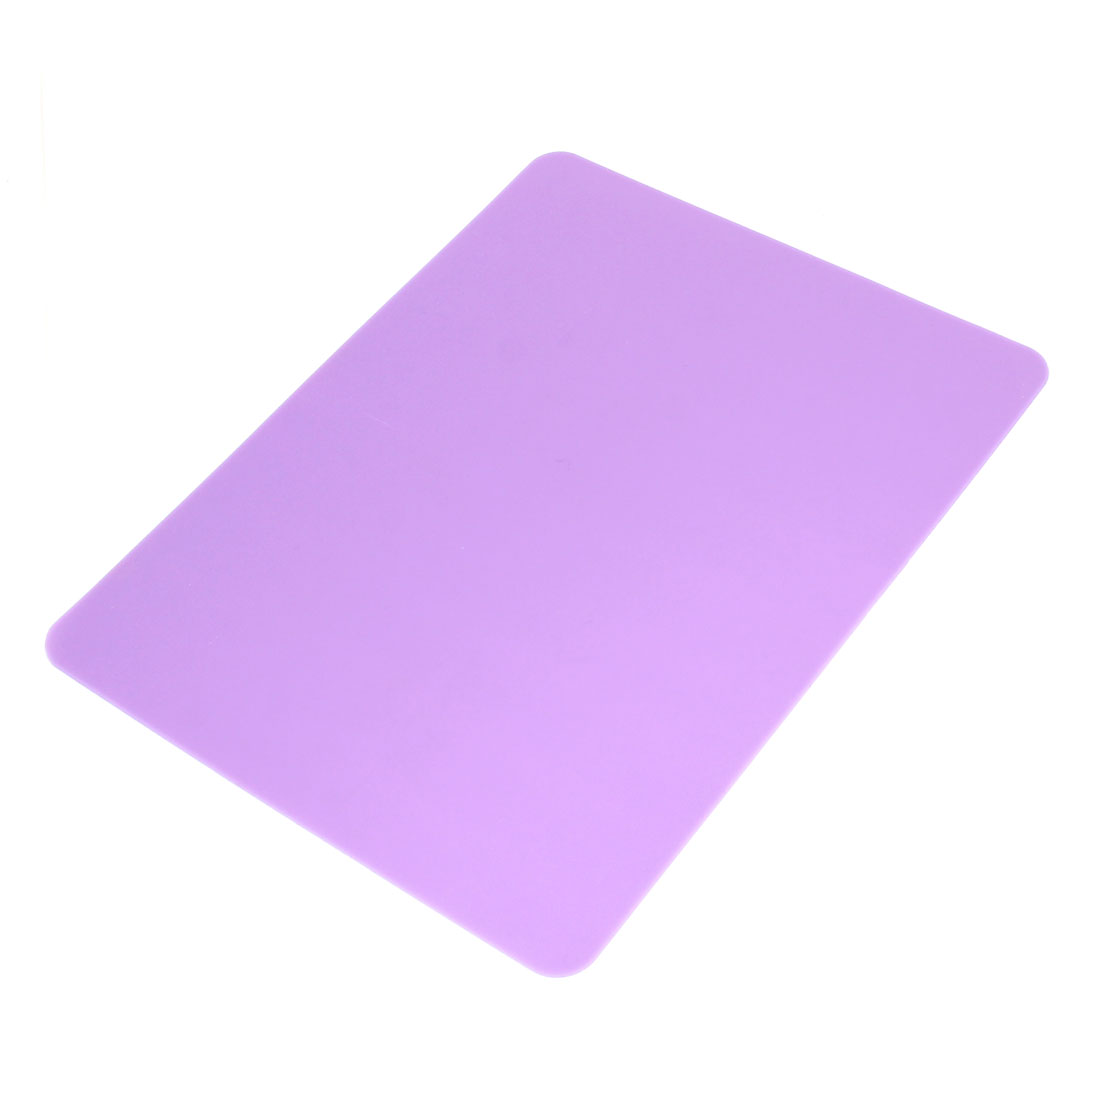 21.5cm x 17cm Light Purple Nonslip Silicone Desktop Computer Mouse Pad Mat